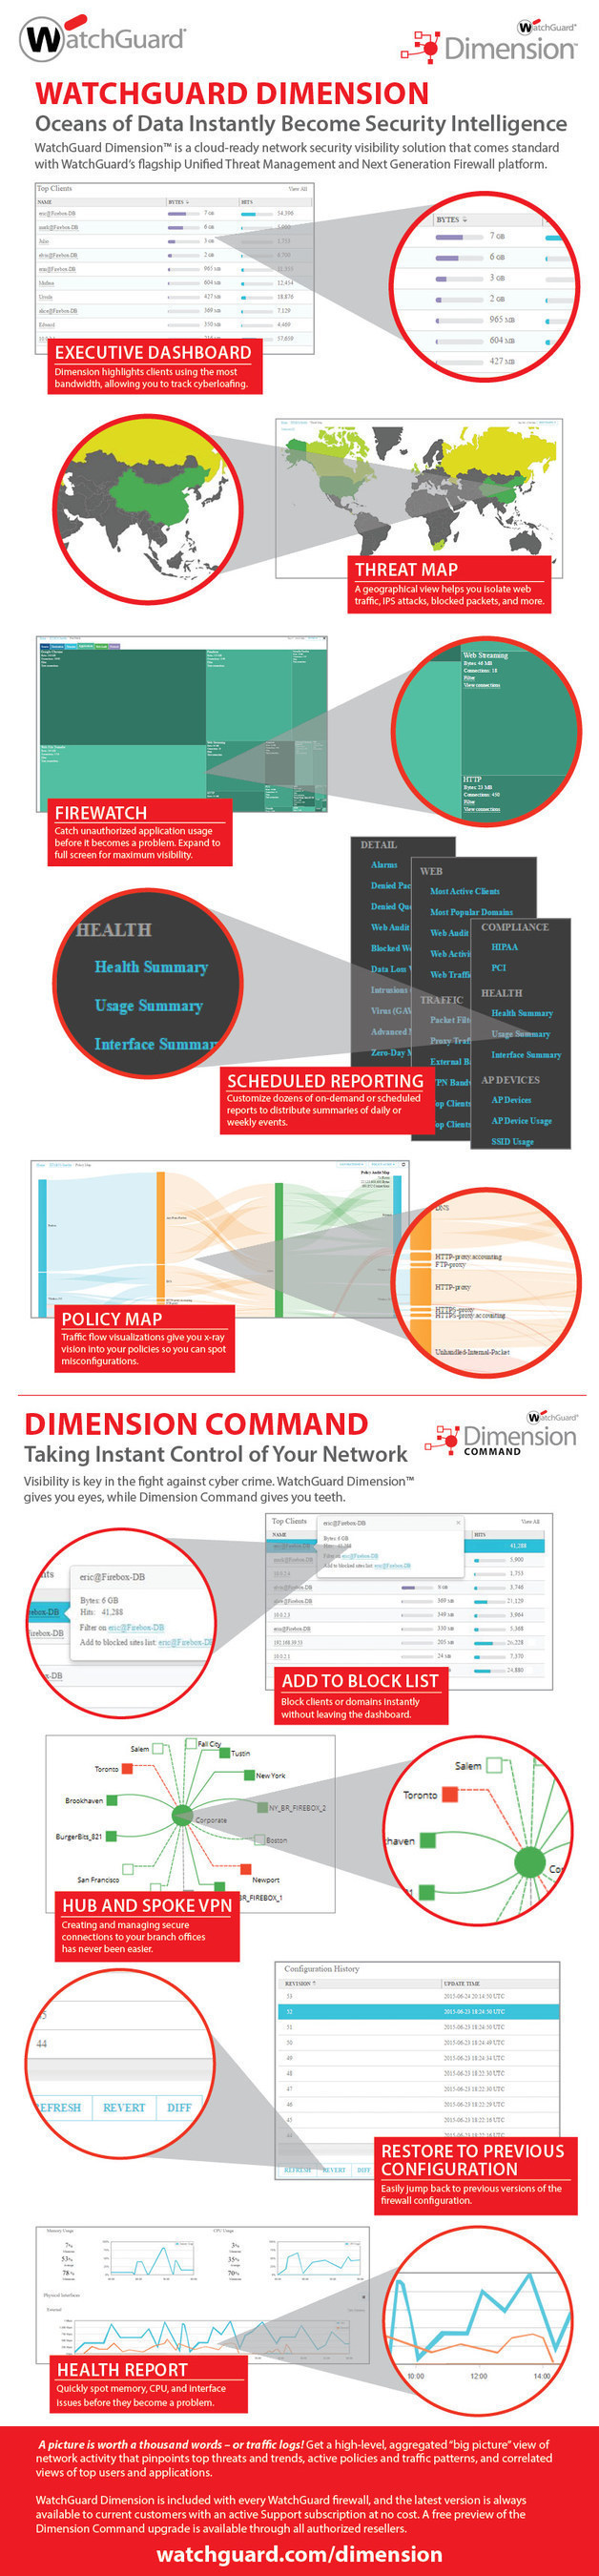 New enhancements to WatchGuard Dimension(TM) adds a suite of big data visibility and reporting tools that instantly identify and distill key network security threats, issues and trends; includes a preview of several new control and security configuration capabilities that translate visibility into immediate action.